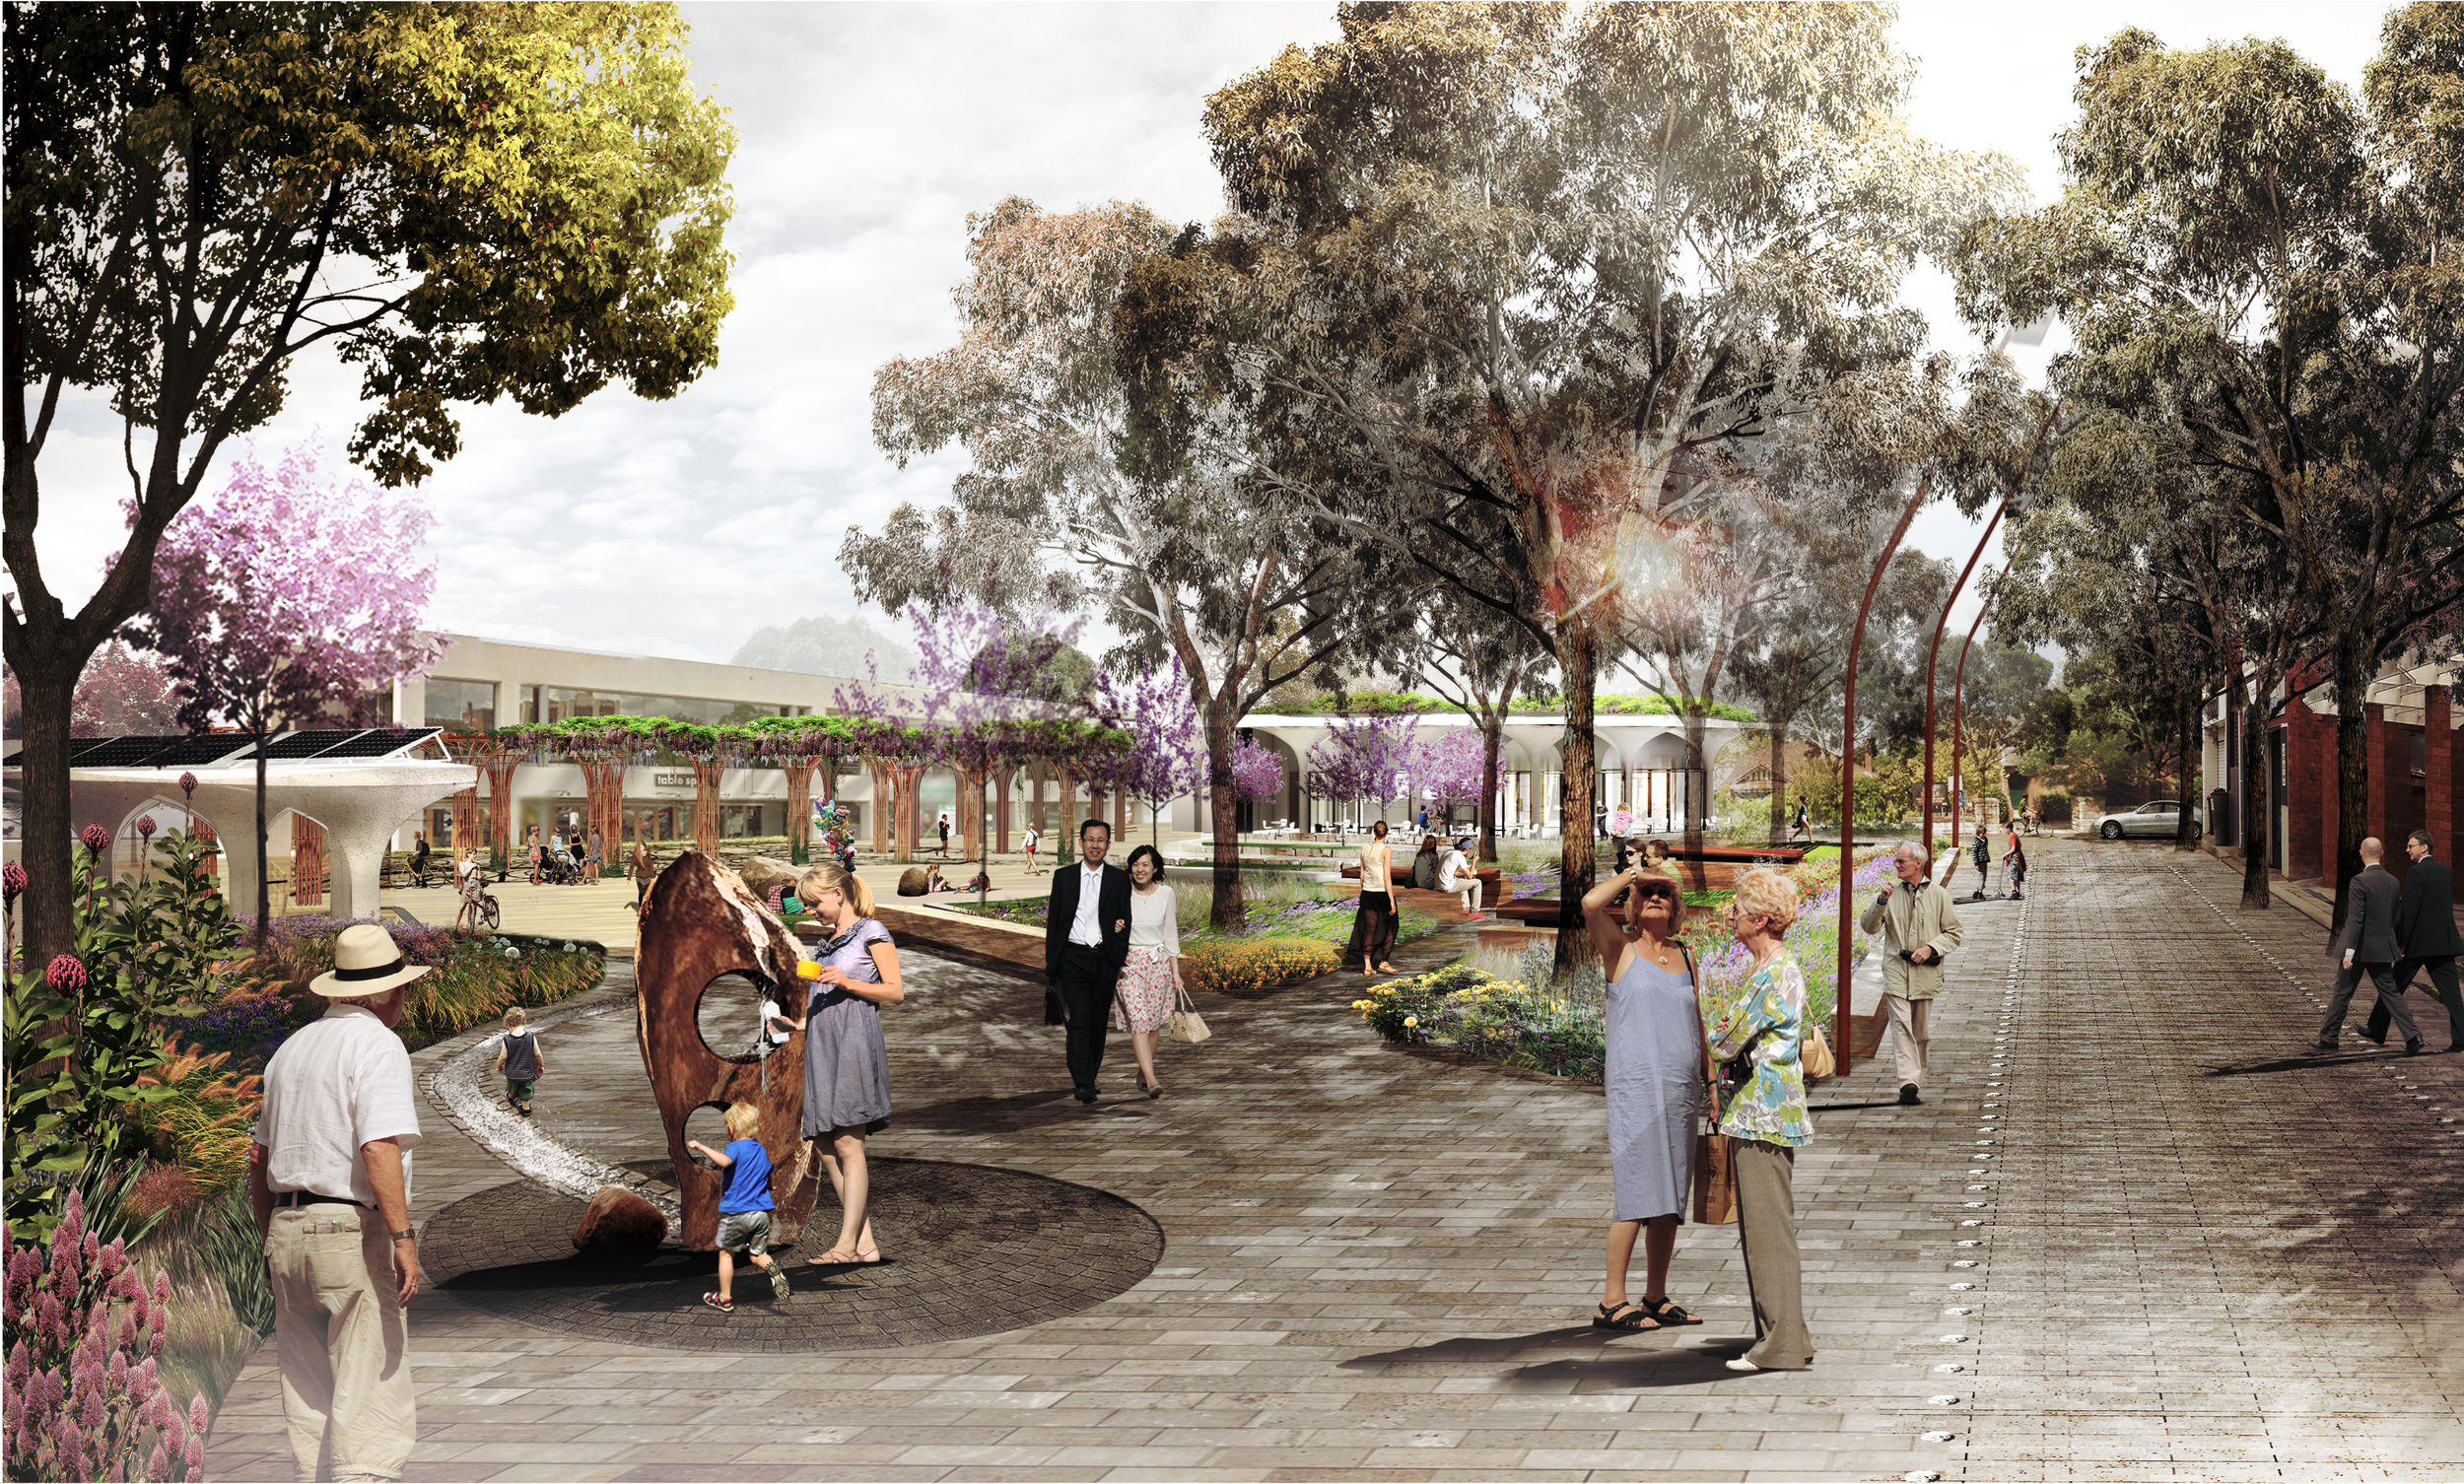 LINDFIELD VILLAGE GREEN | Lindfield, Sydney